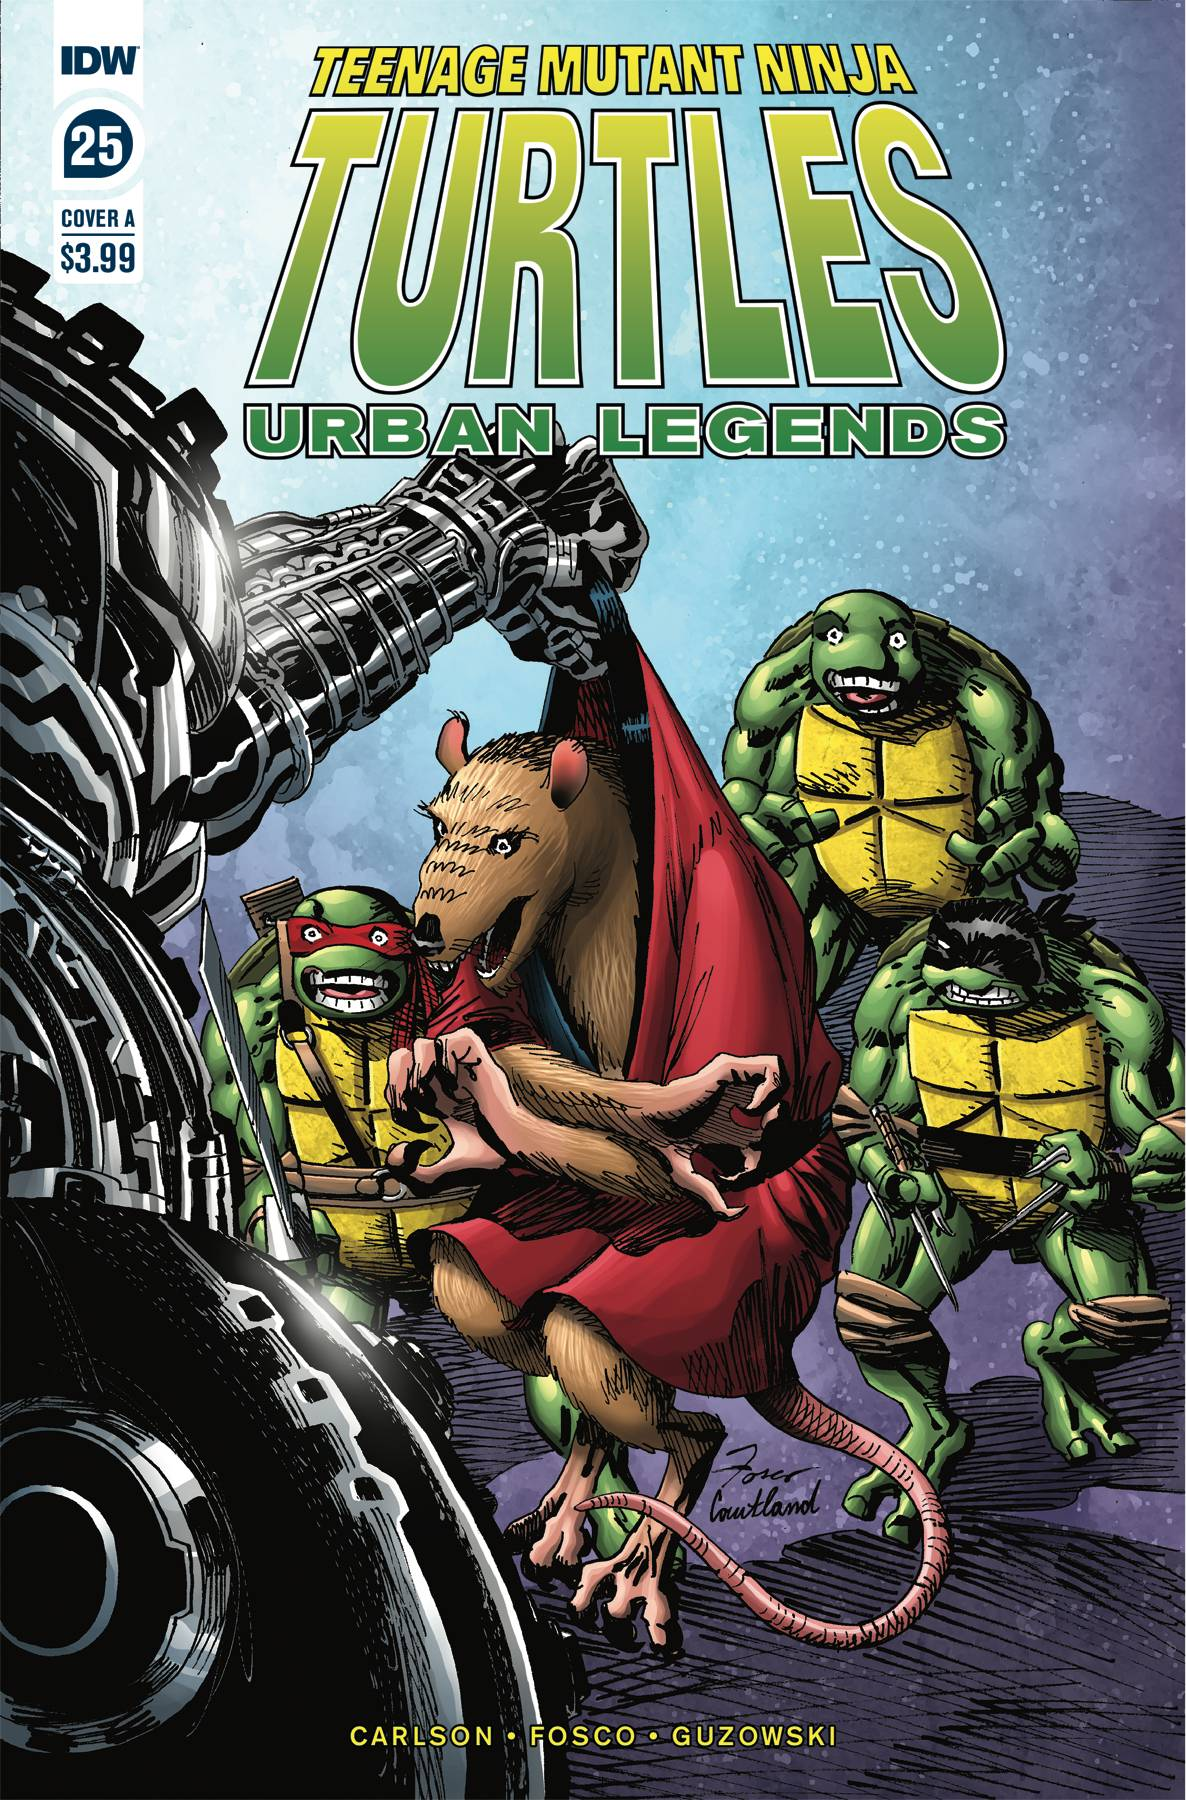 TMNT URBAN LEGENDS #25 CVR A FOSCO